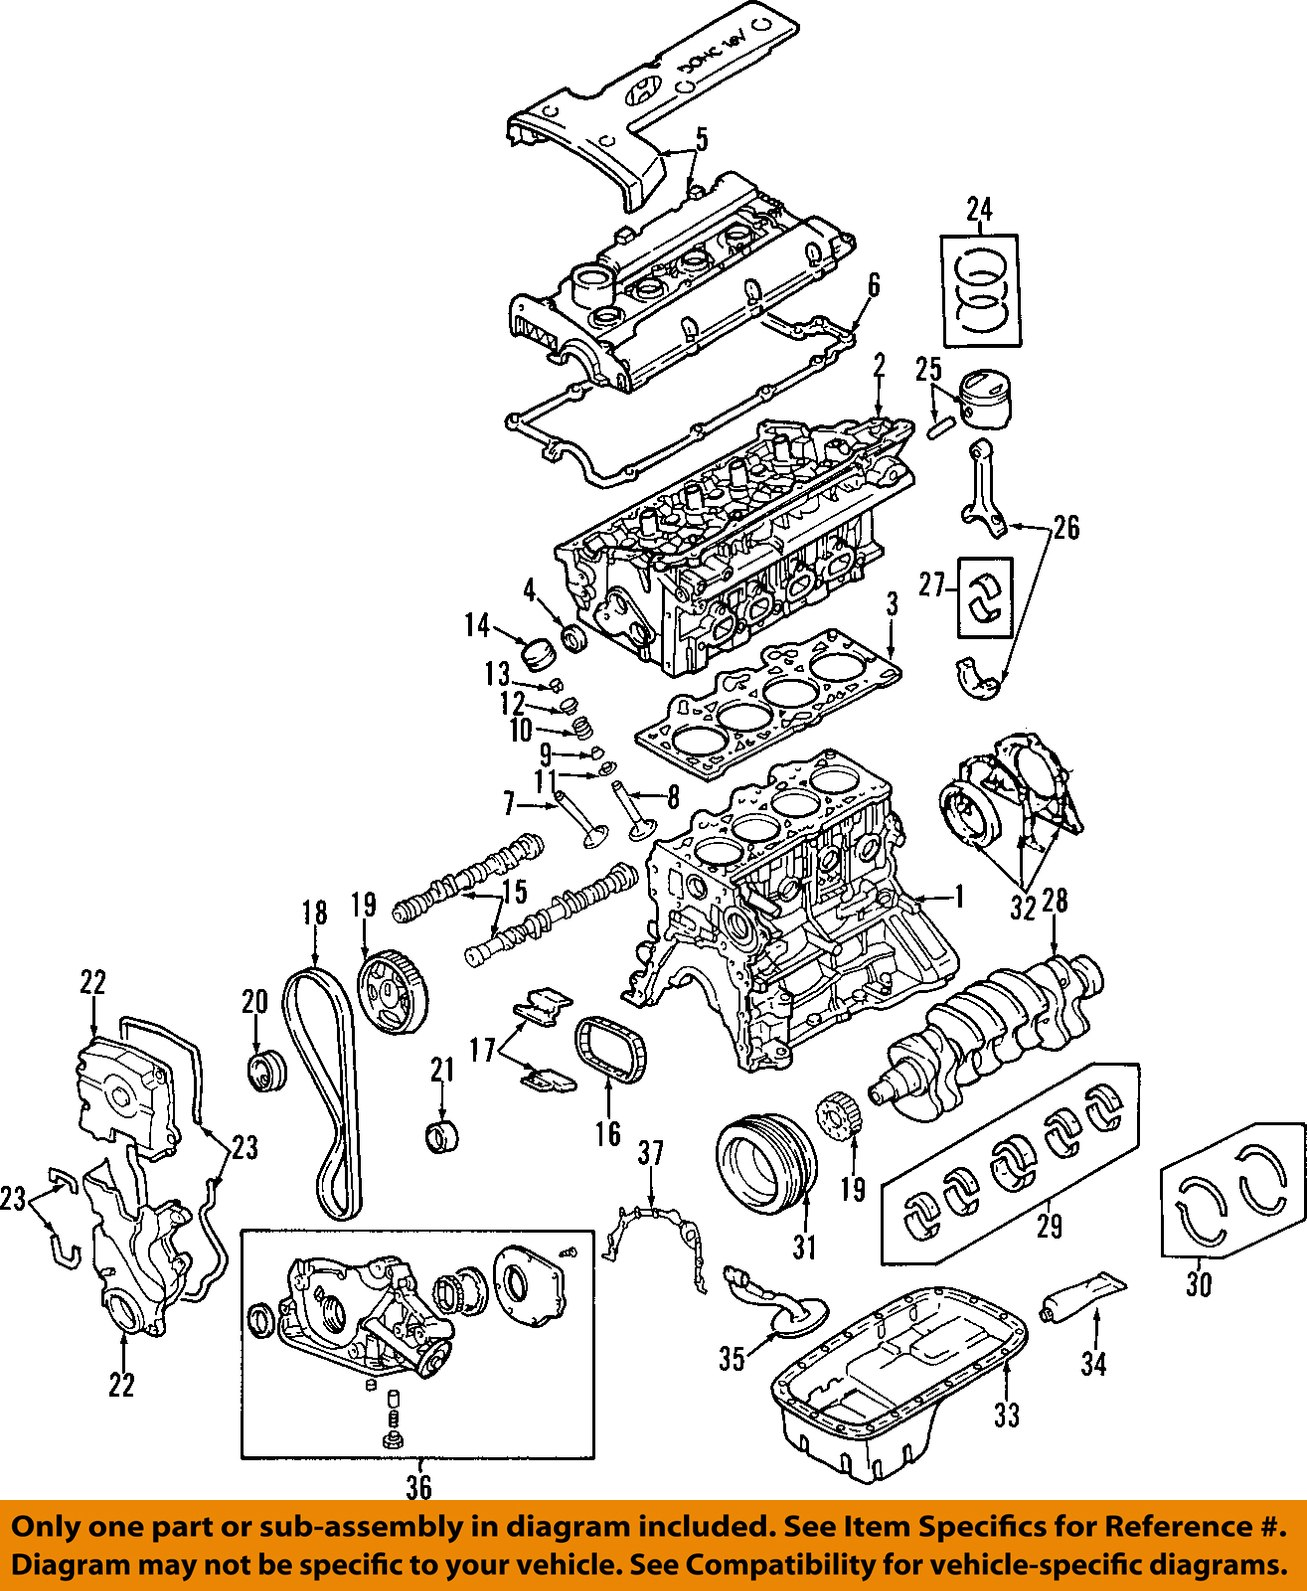 hight resolution of 2010 hyundai sonata engine diagram wiring diagrams bib 2001 hyundai sonata engine diagram